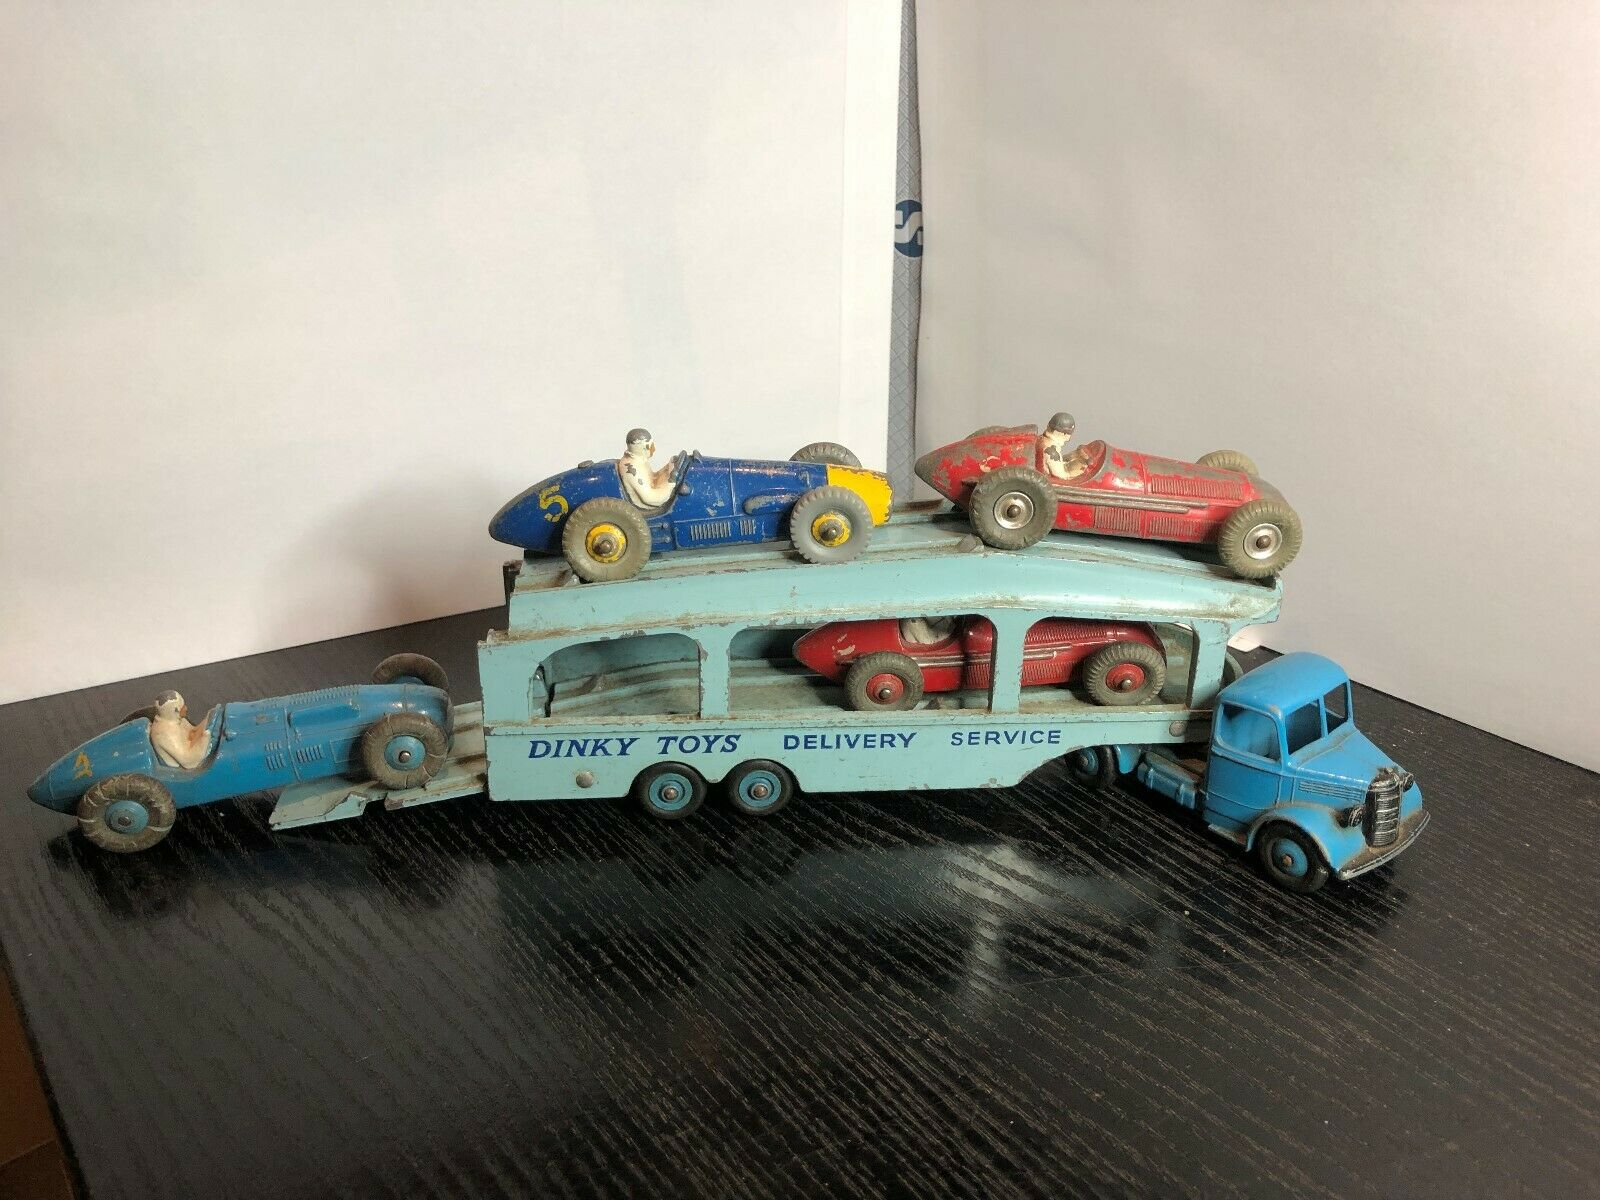 4 ORIGINAL DINKY SpielzeugS 23 serie RACING Autos & BEDFORD PULLMAN CAR TRANSPORTER